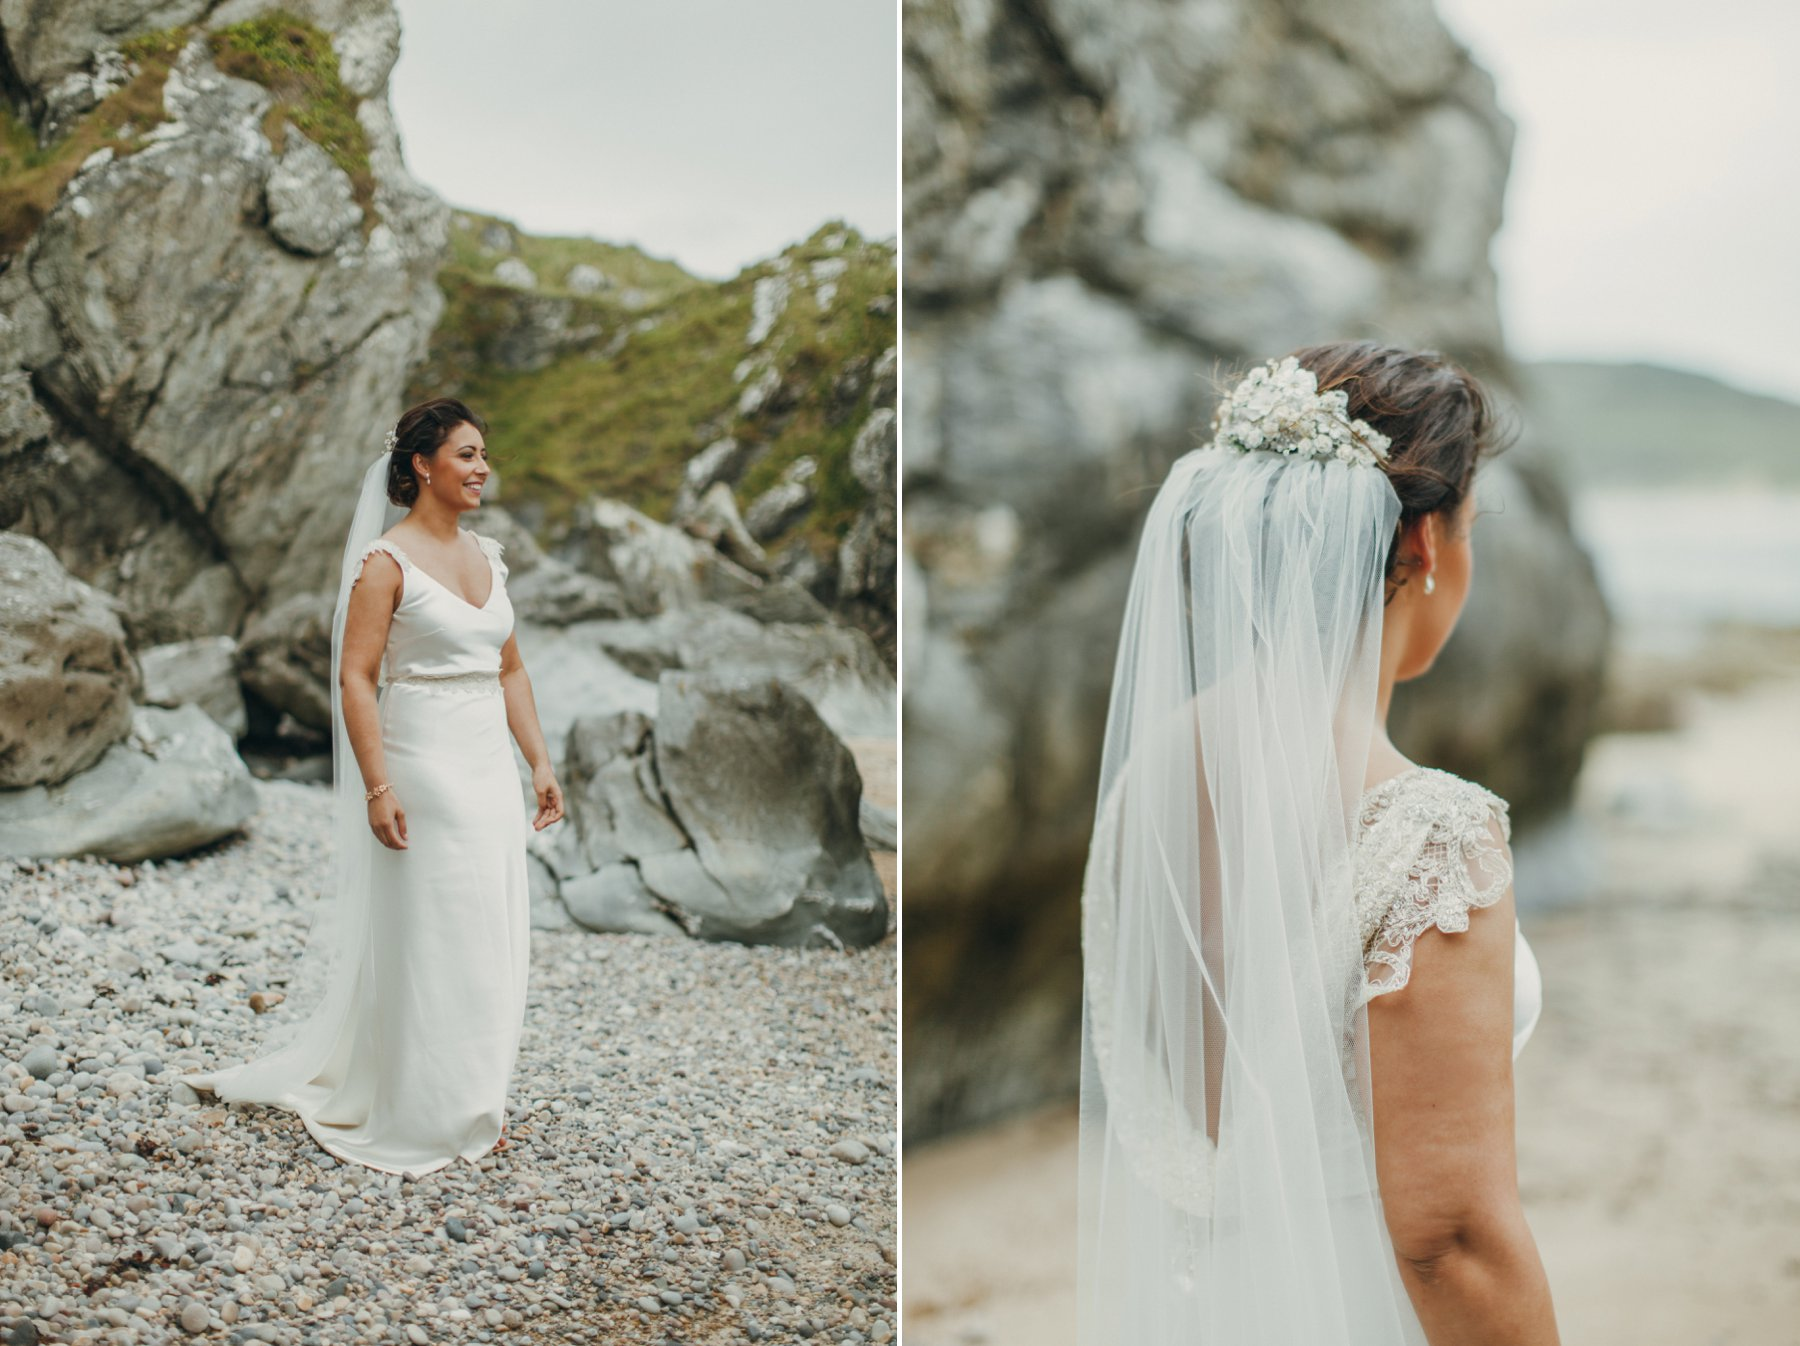 neilhannah-donegalwedding_0052